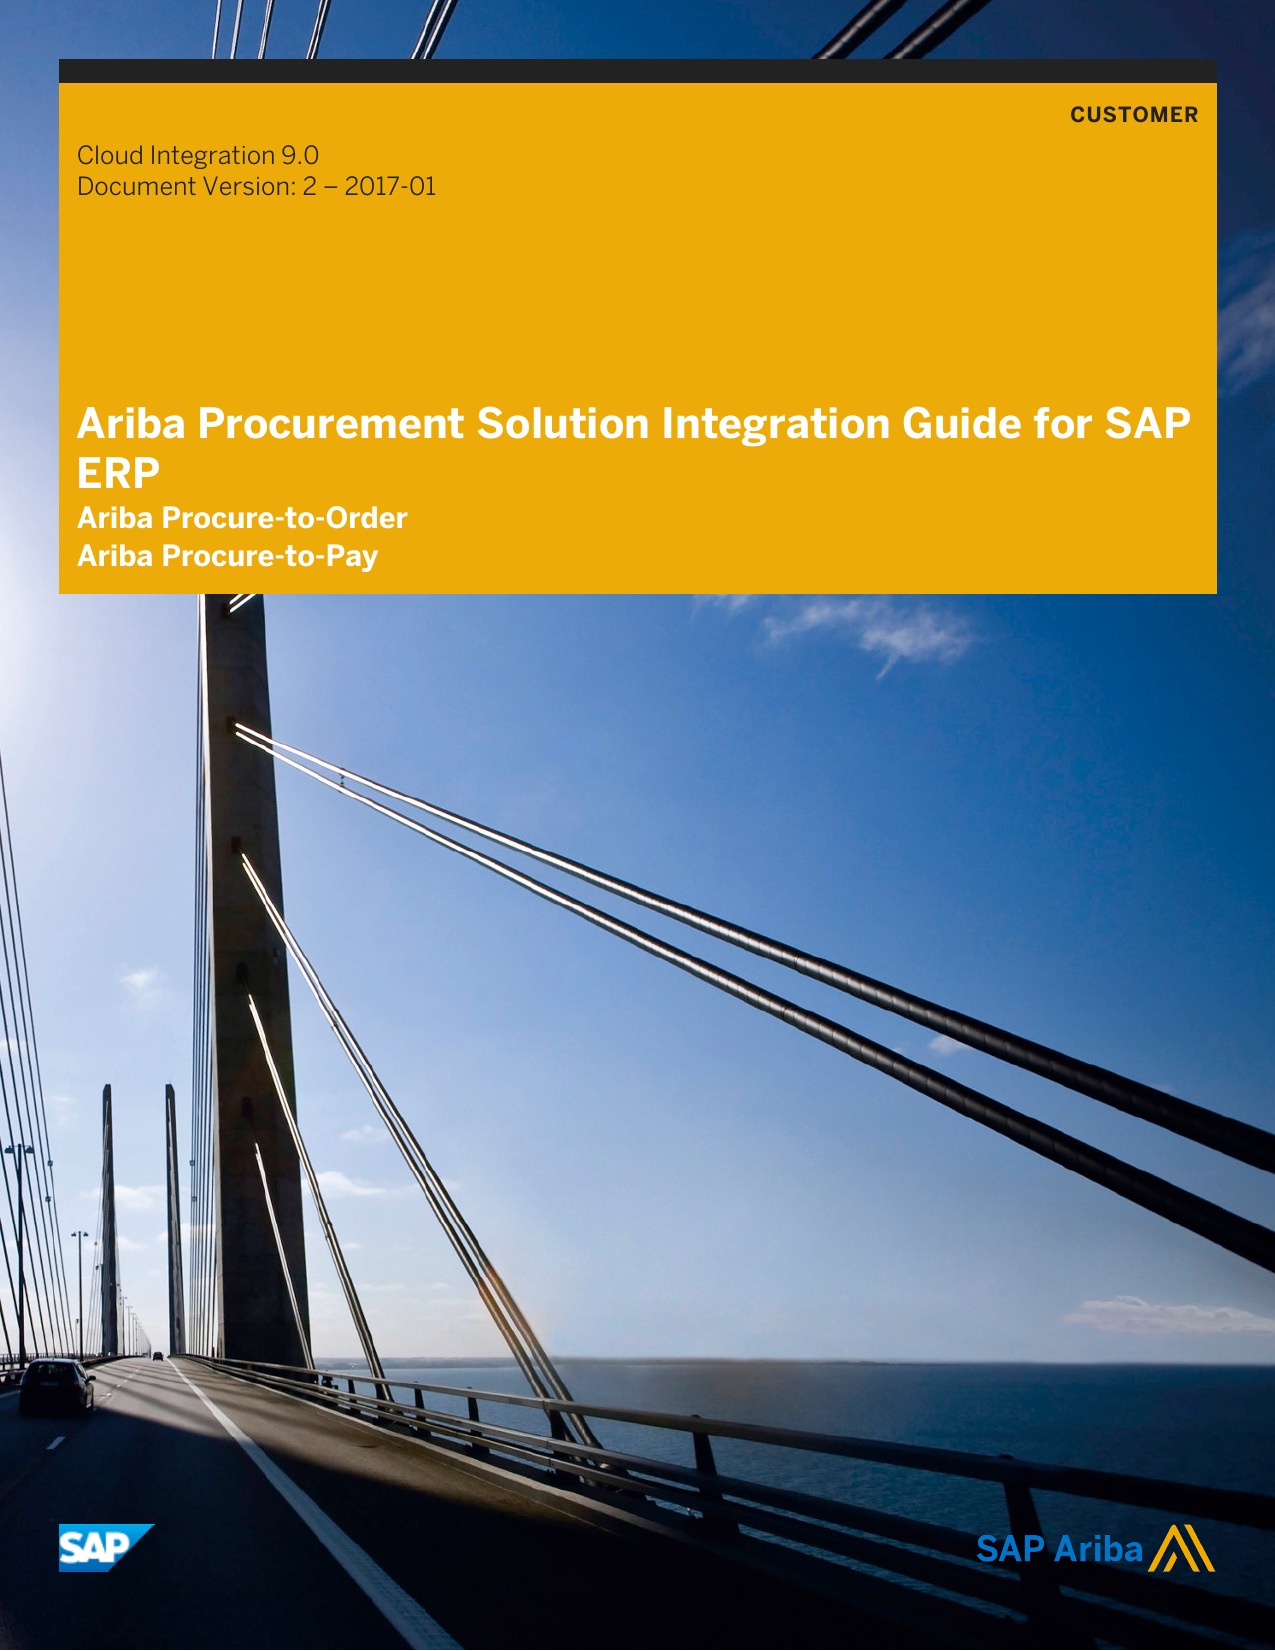 Ariba Procurement Solution Integration Guide for SAP ERP